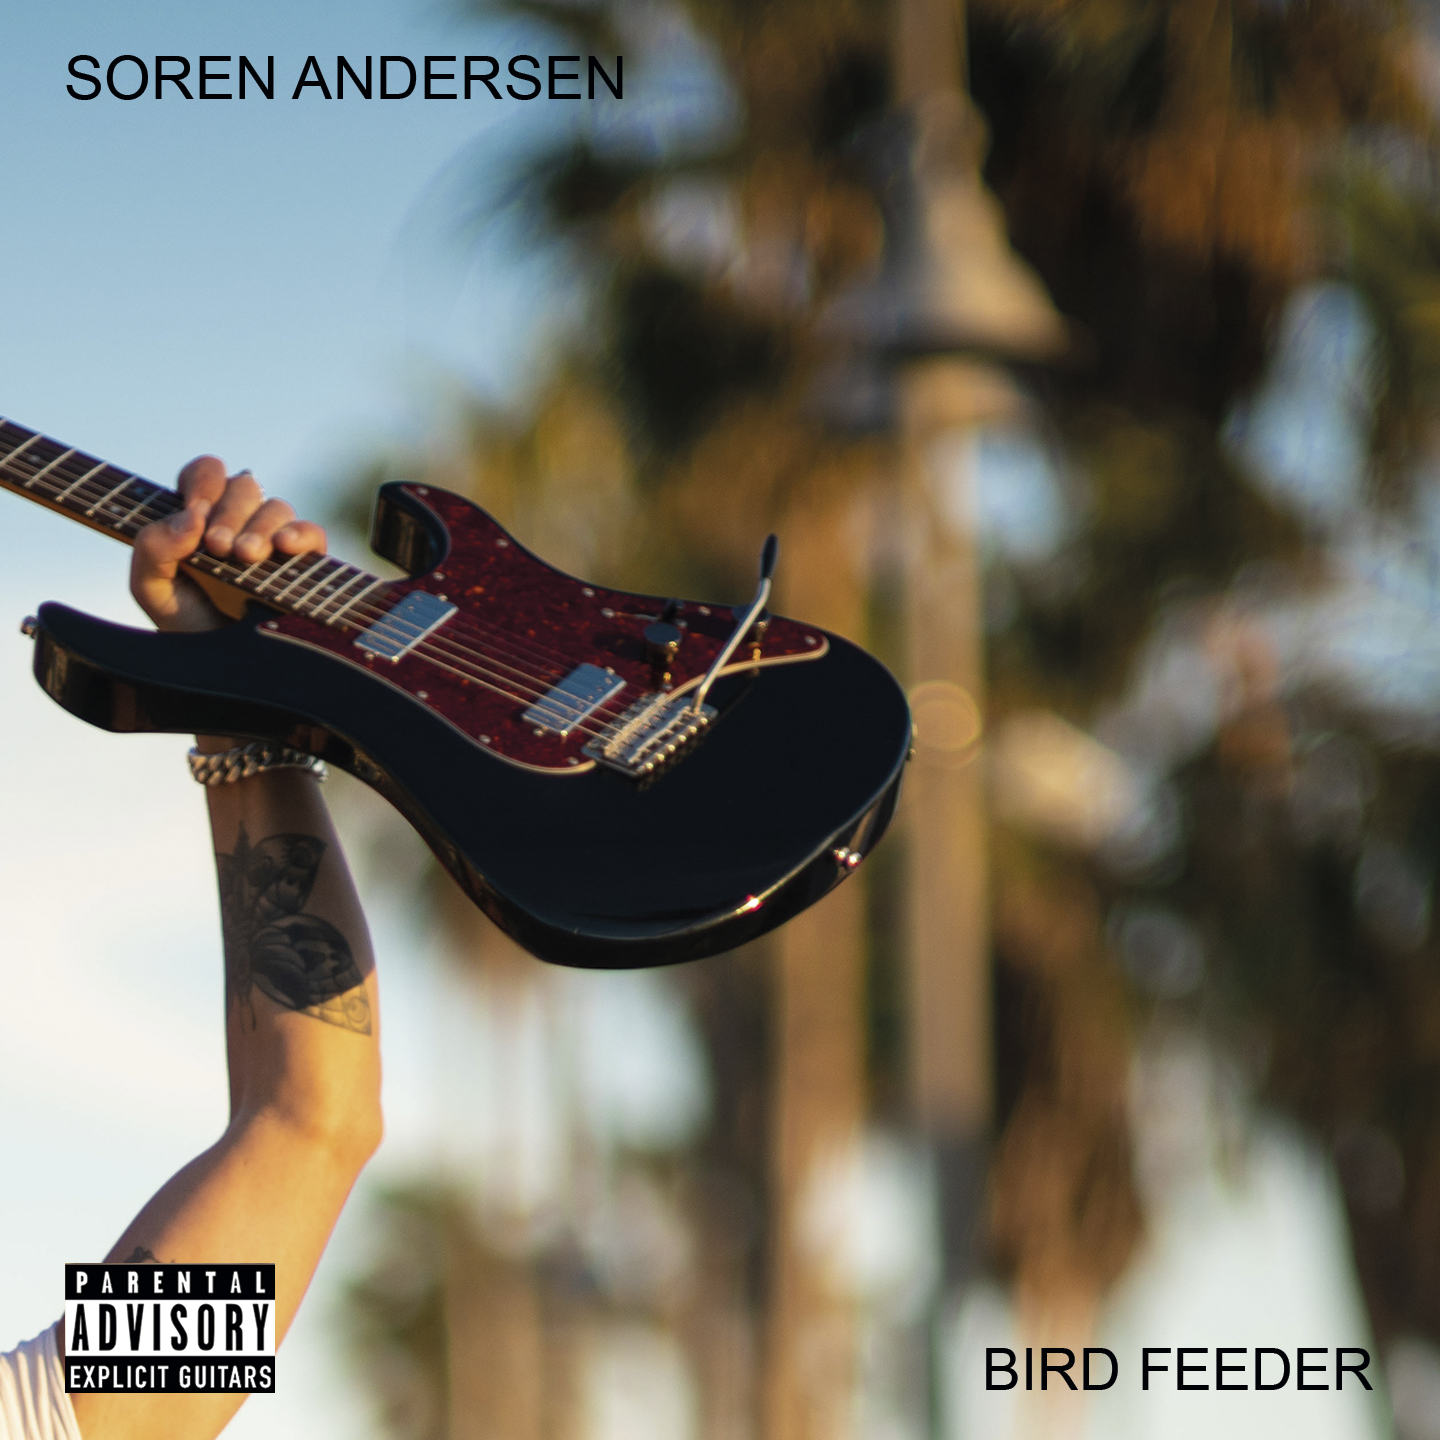 Soren Andersen – Bird Feeder (single)